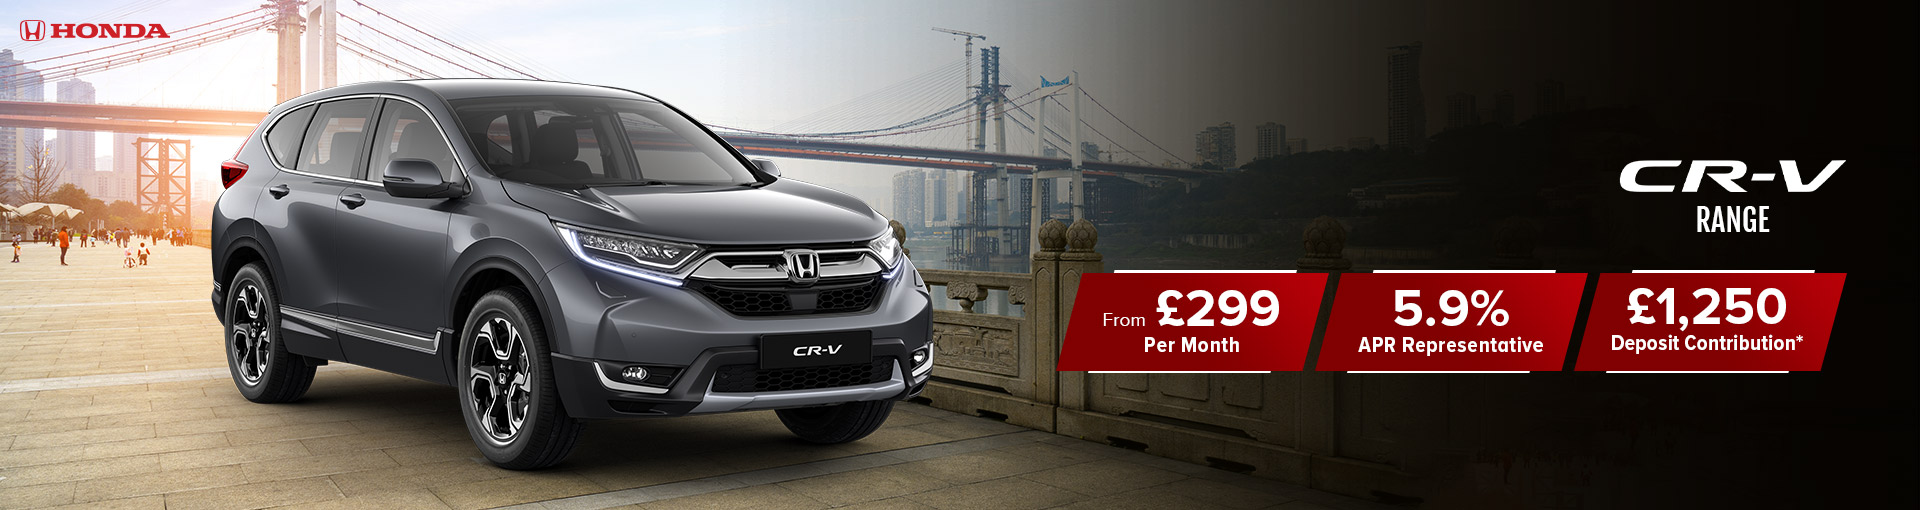 CR-V SR 1.5 VTEC Turbo New Car Offer